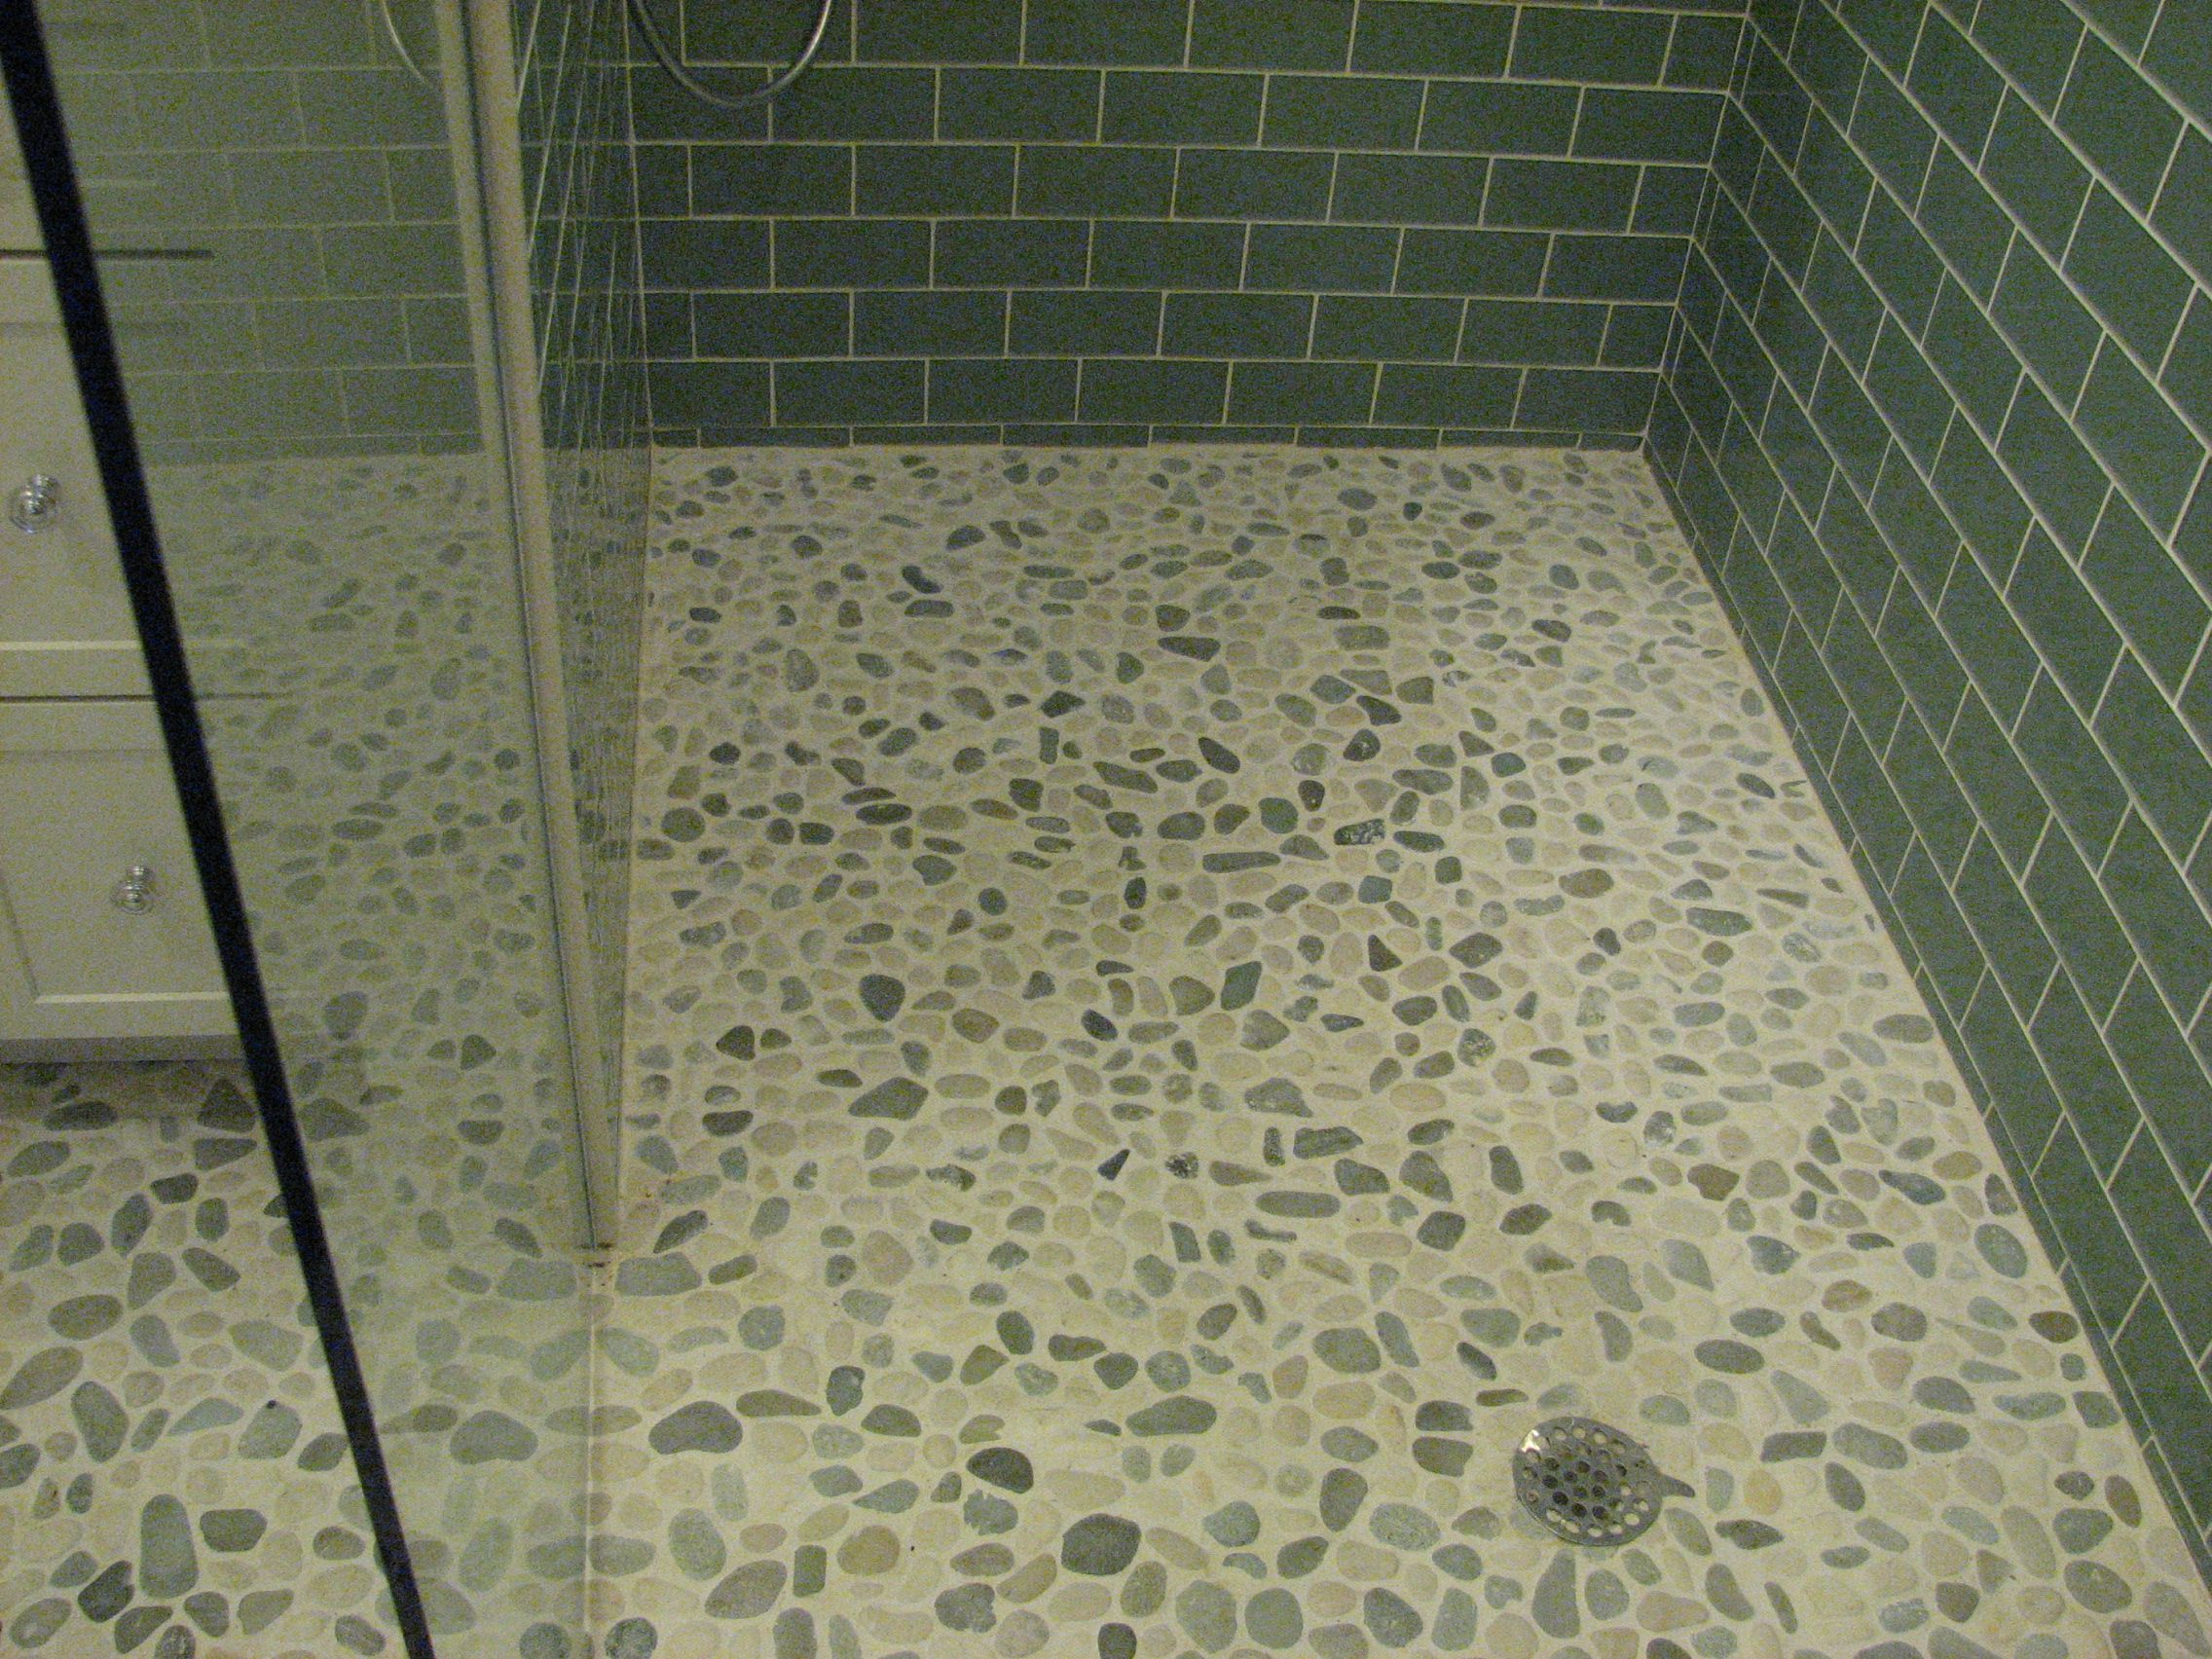 Bathroom: Amazing Bathroom Decoration Using White Pebble Tile Shower Floor  Along With Green Subway Tile Shower Wall And Glass Shower Doors, Wood Tile  Shower ... Part 62